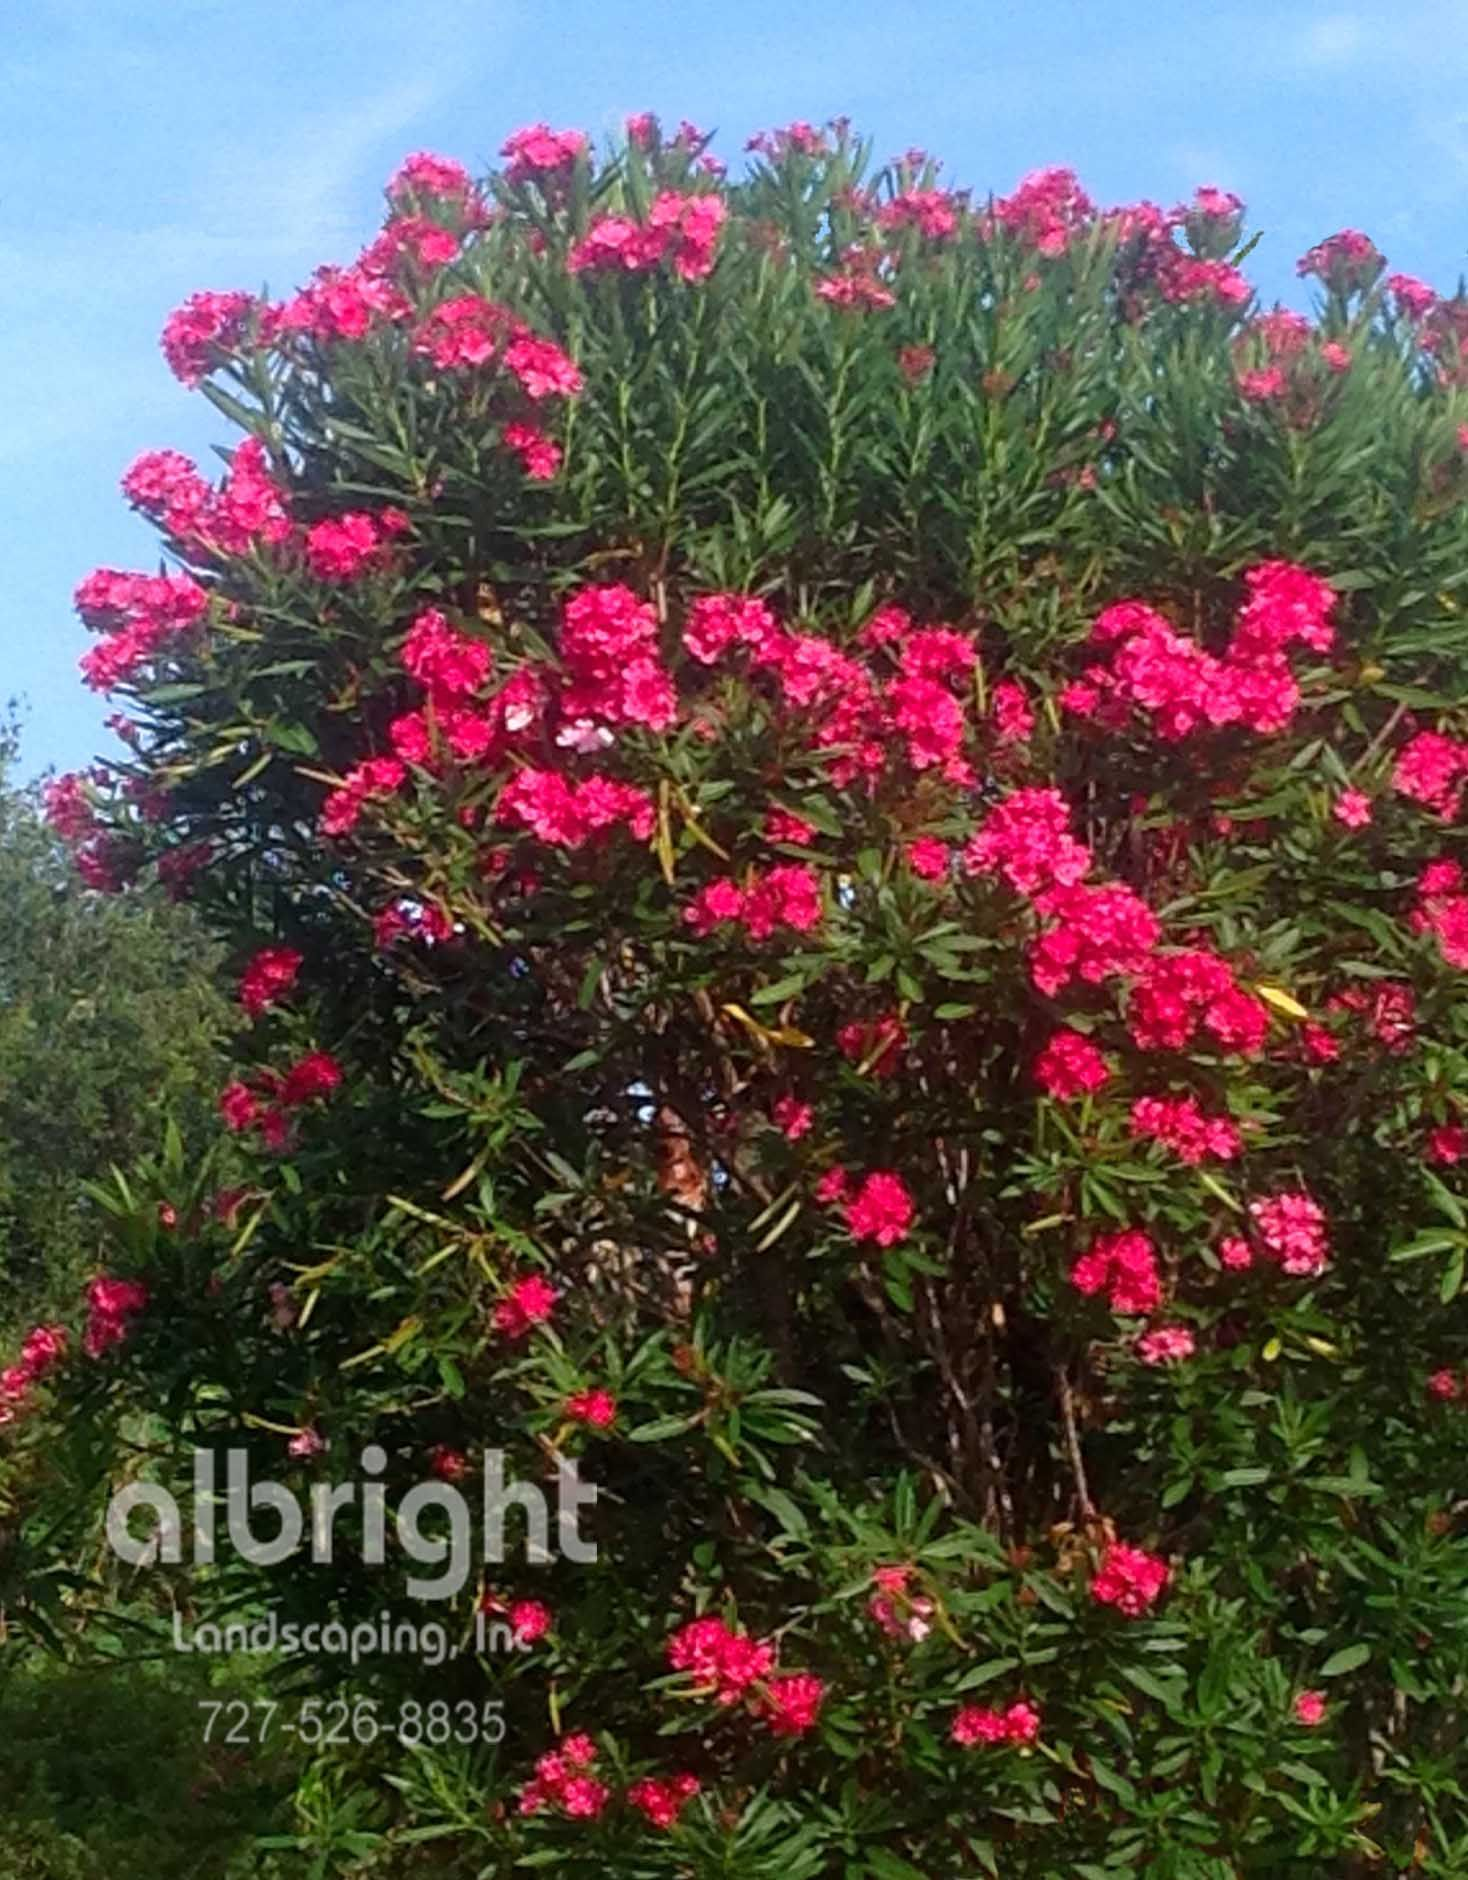 oleander shrub hot pink flowers colorful landscape. Black Bedroom Furniture Sets. Home Design Ideas